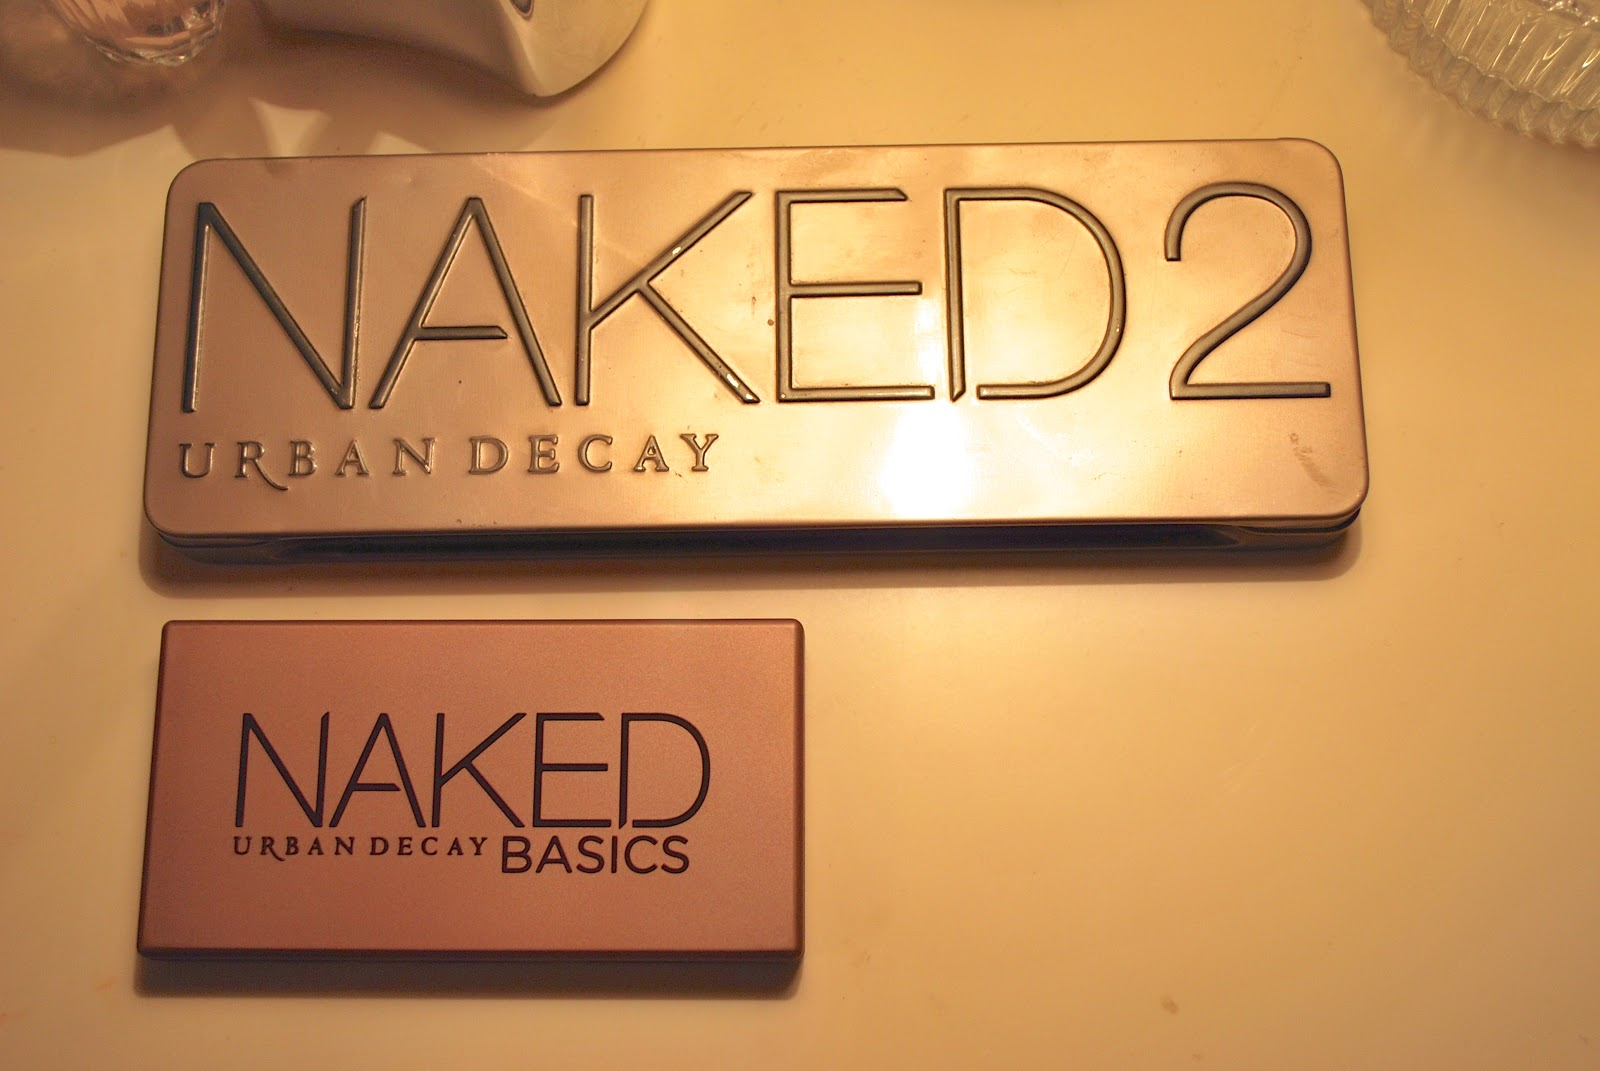 Urban Decay Naked Basics Palette size